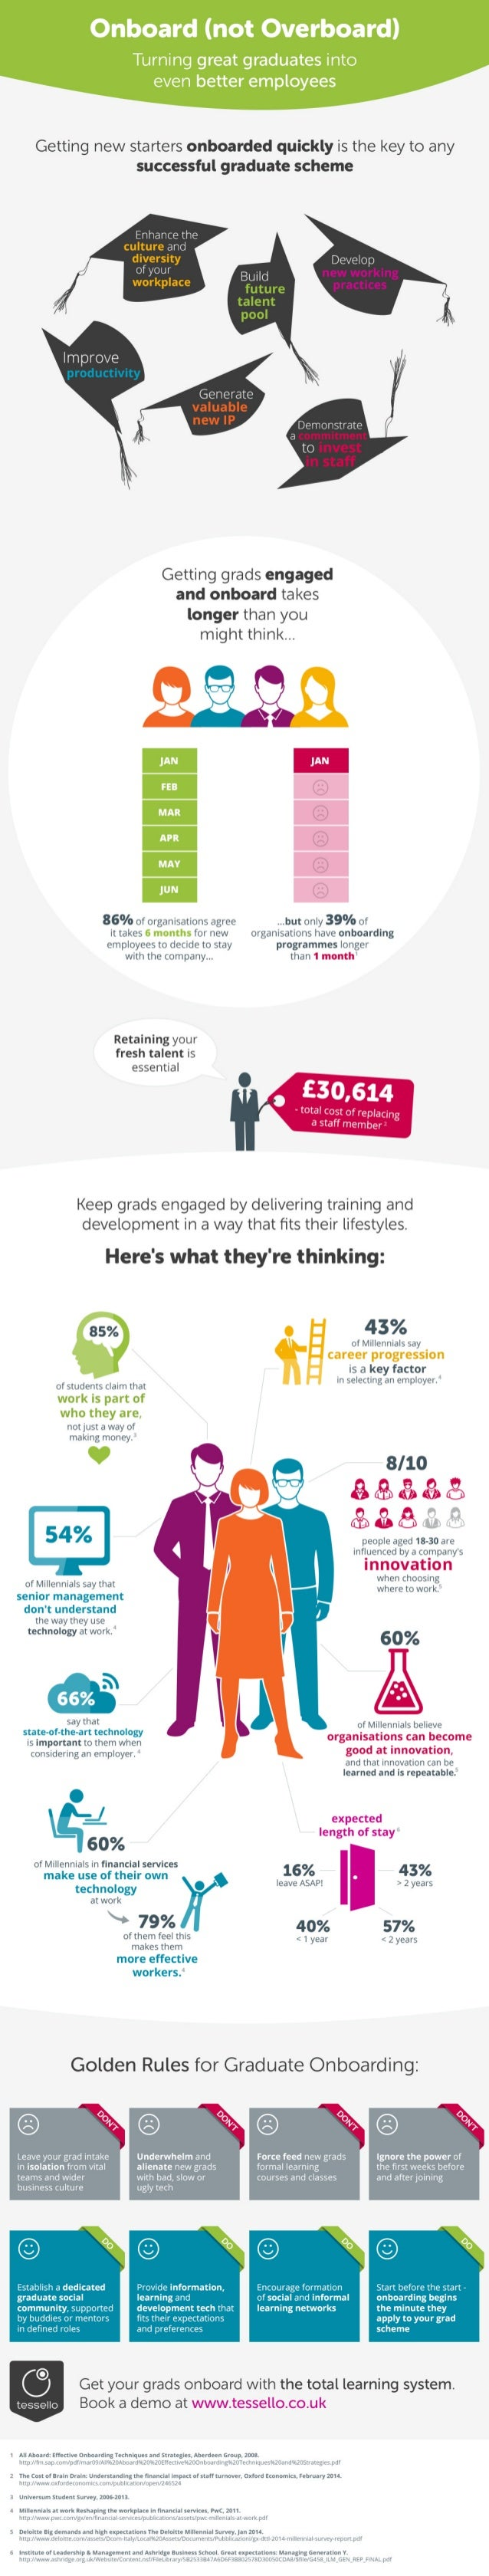 Infographic: Onboard (not Overboard) The smart way to embed new graduates in your business